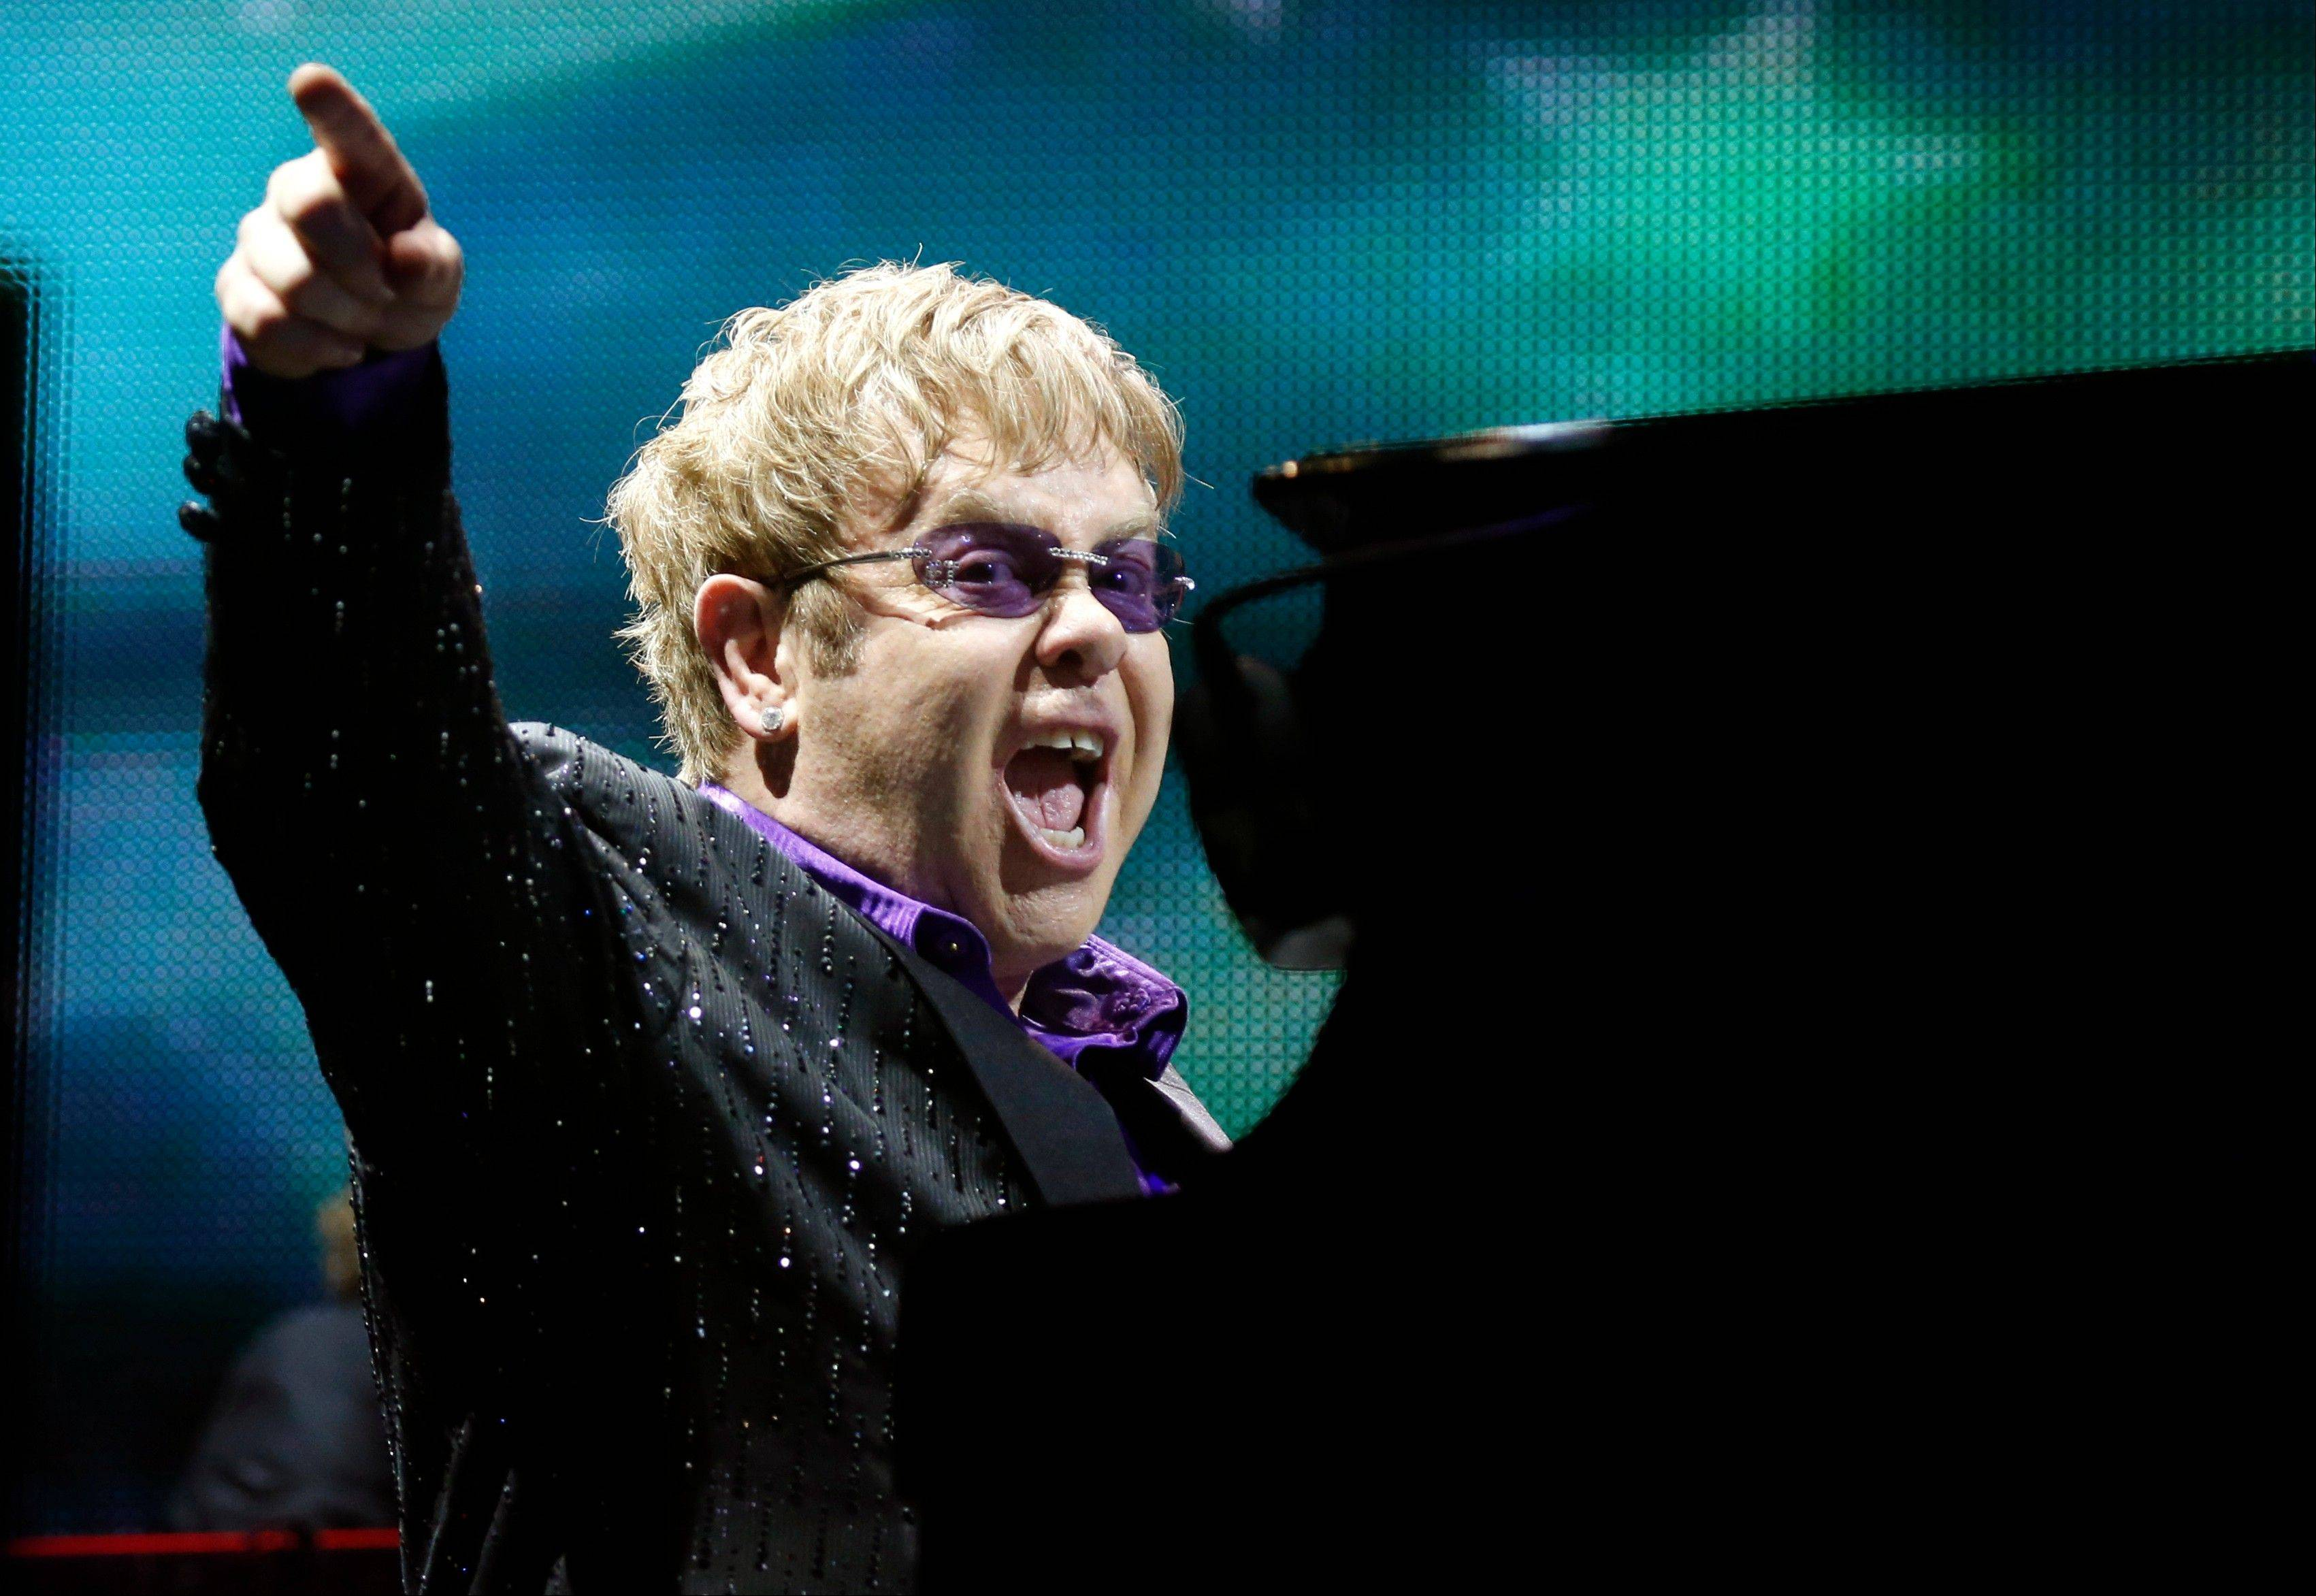 Elton John will perform Saturday, Nov. 30, at the Allstate Arena in Rosemont.